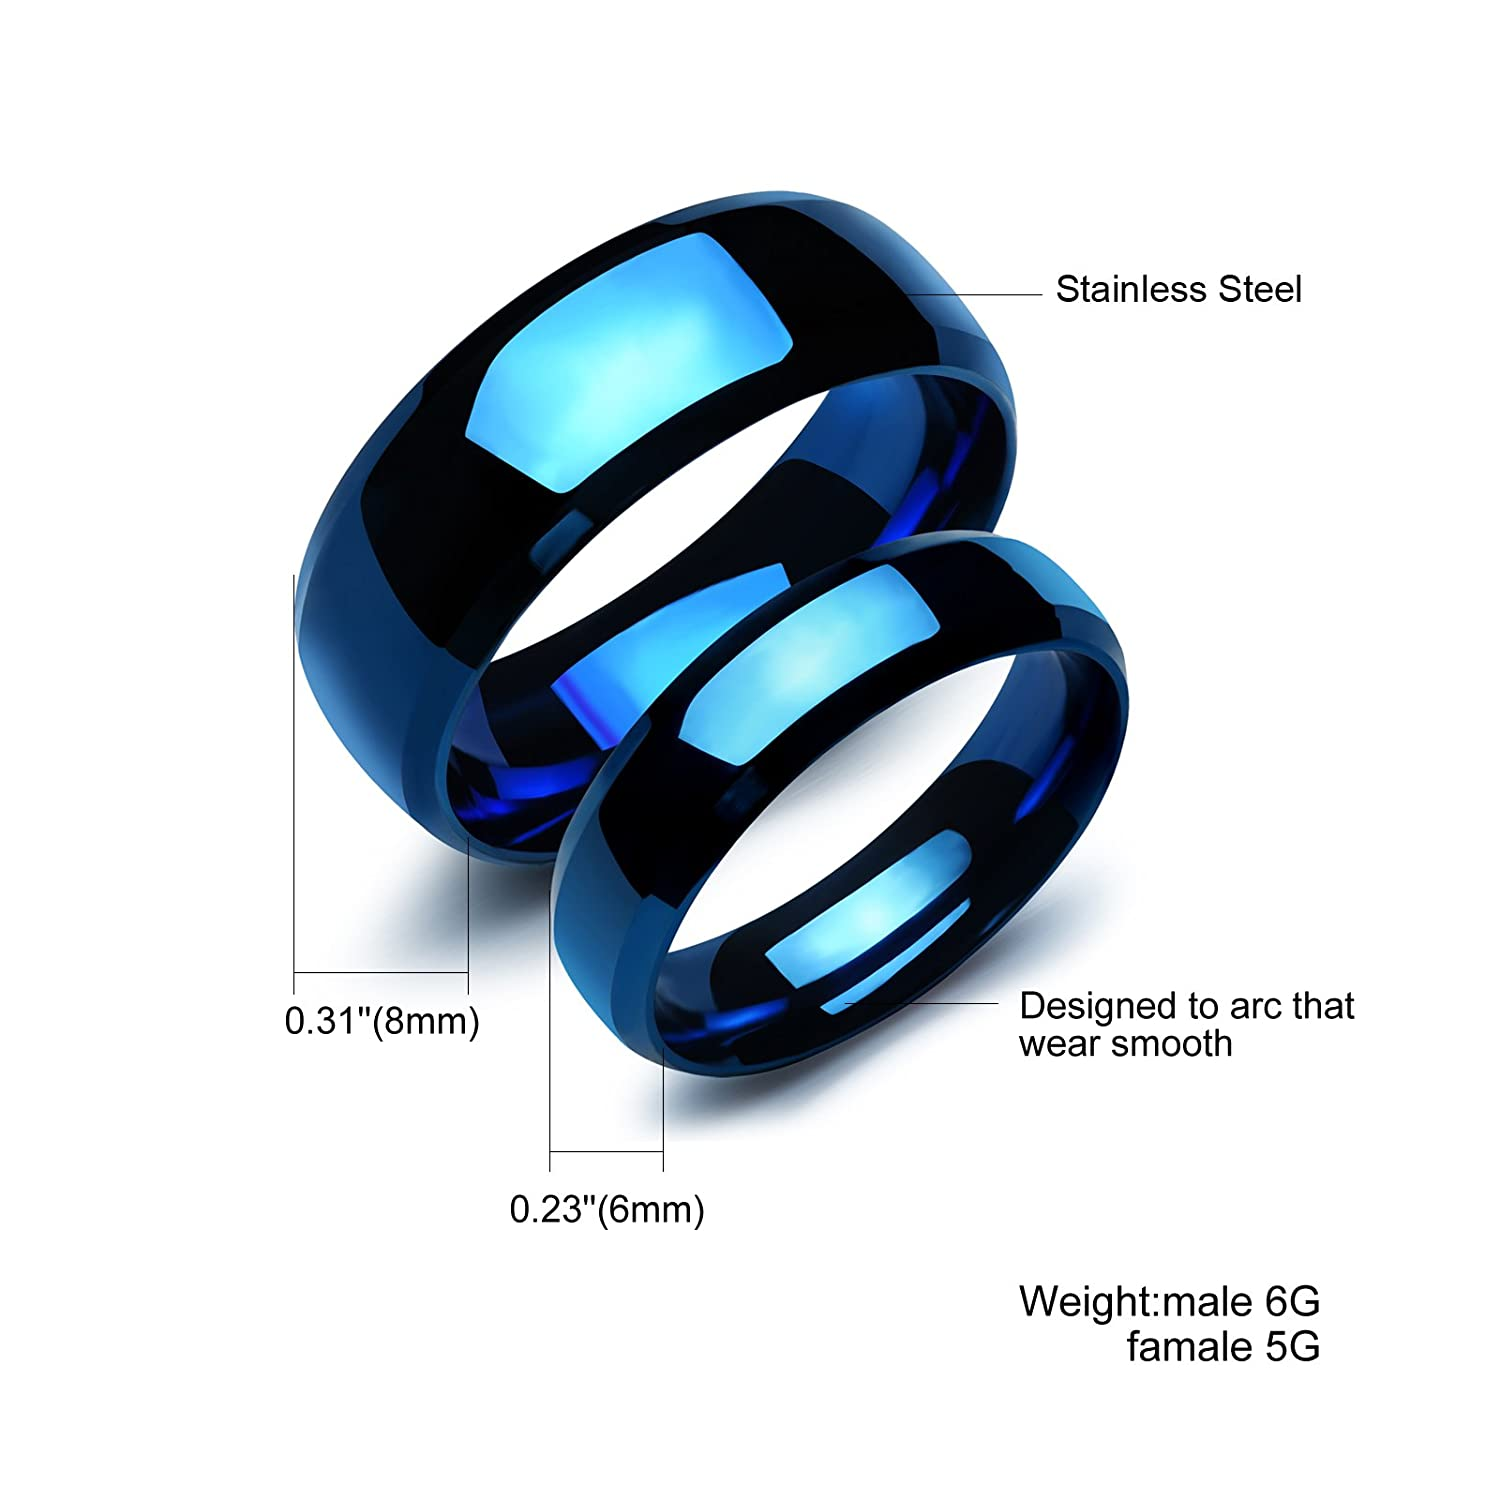 fiber eejart des blue steel dragon rings stainless wedding nibelungen for carbon the black products nerd distinguished ring band